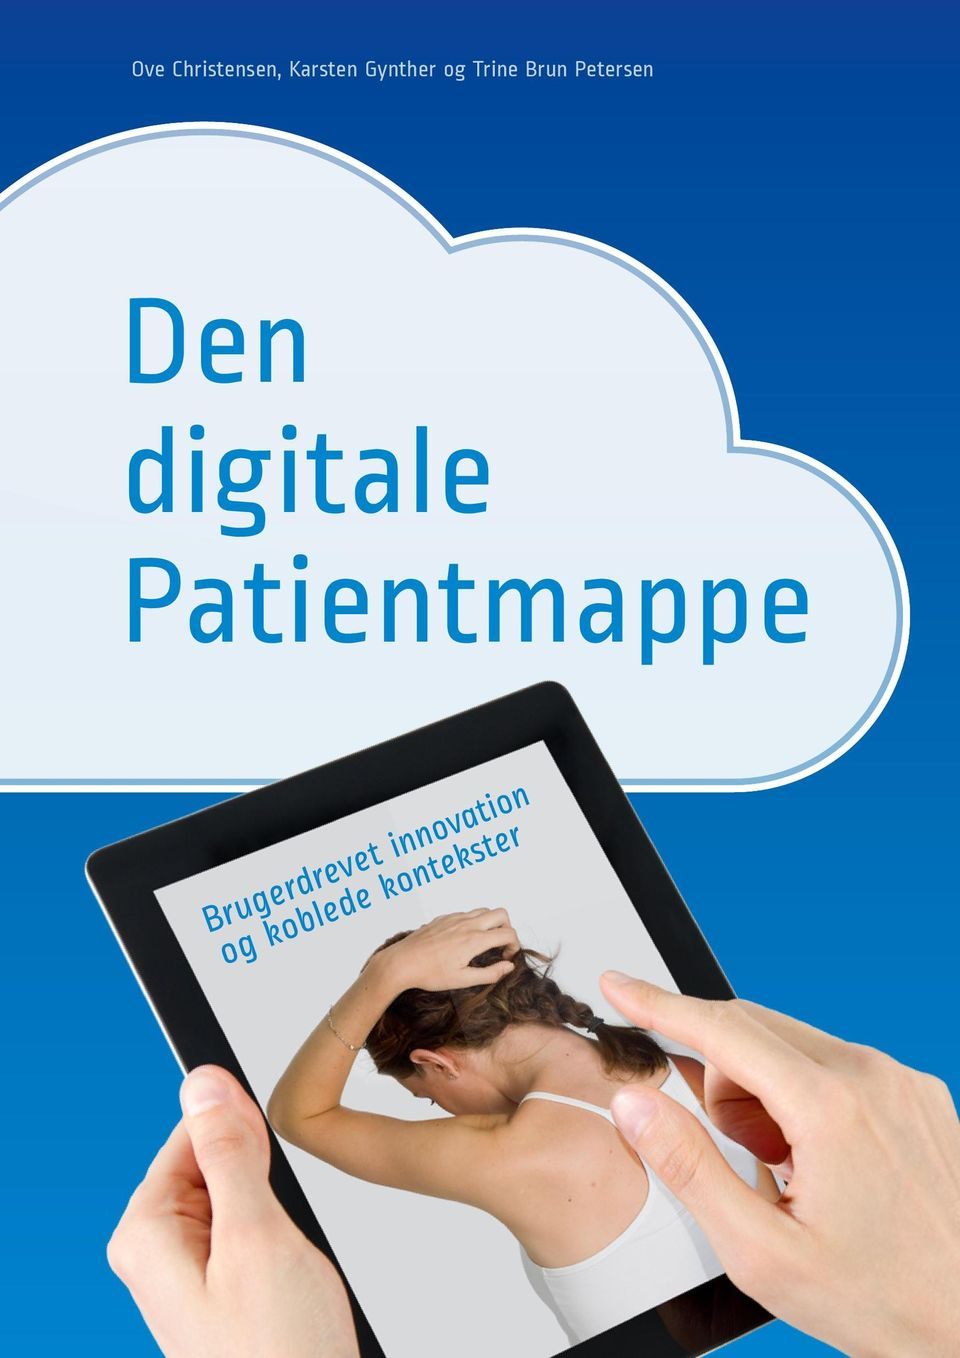 digitale Patientmappe Brugerdrevet innovation og koblede